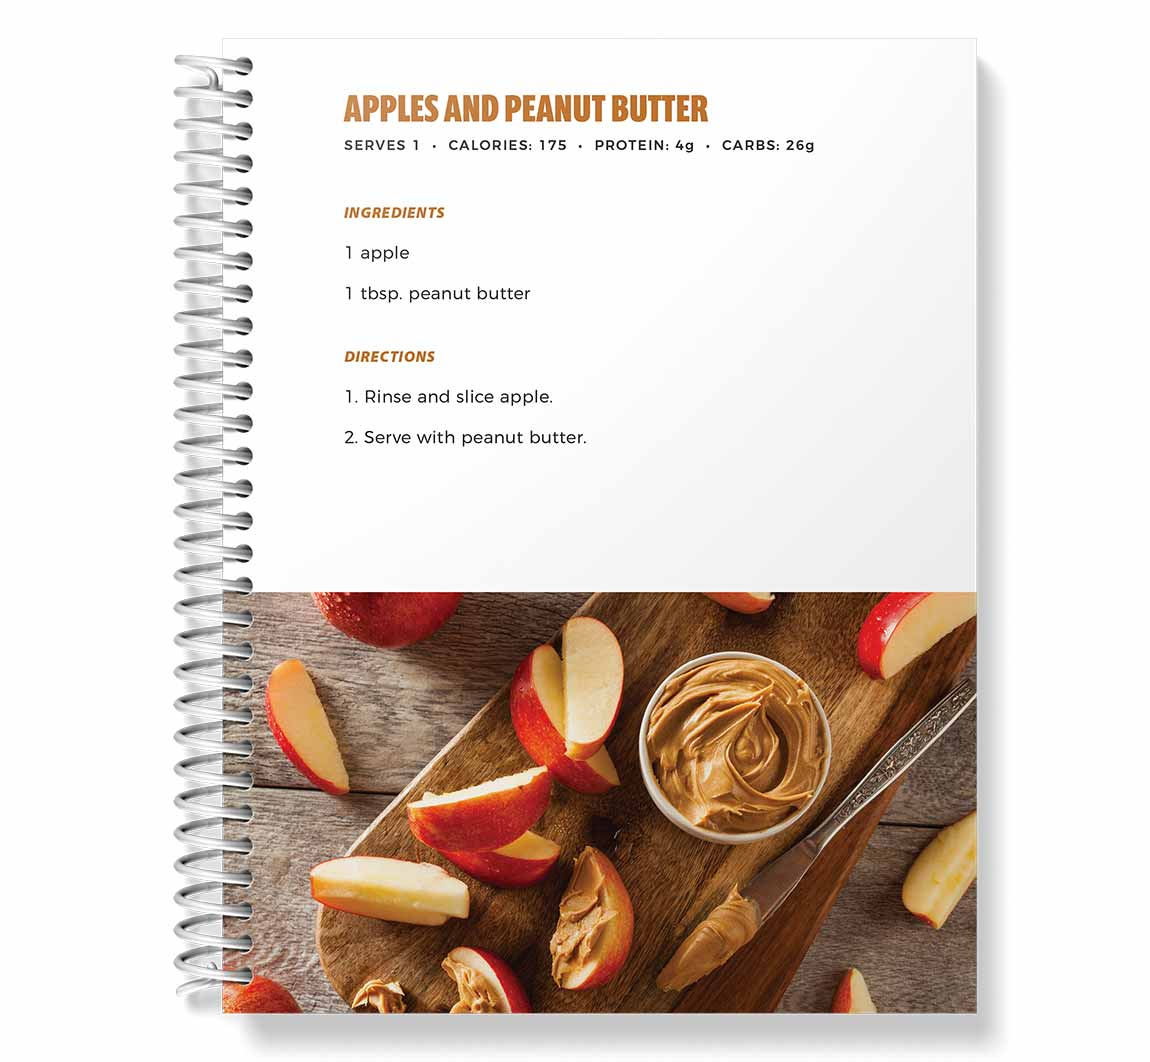 Apples and Peanut Butter image